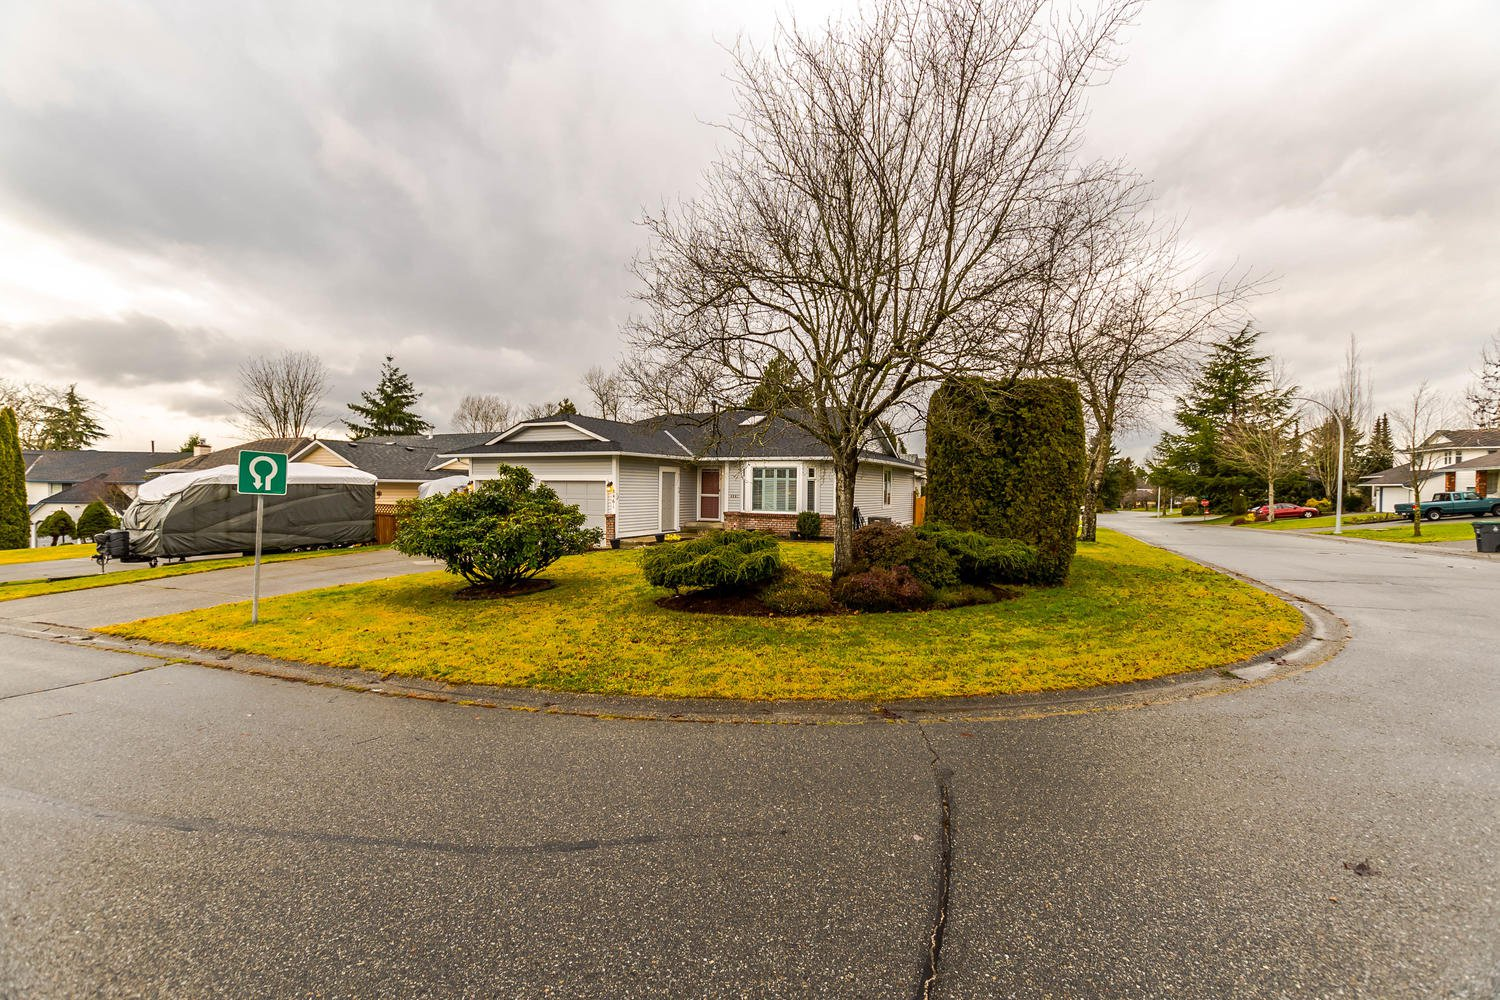 Main Photo: 8461 154A Street in Surrey: Fleetwood Tynehead House for sale : MLS®# R2234591